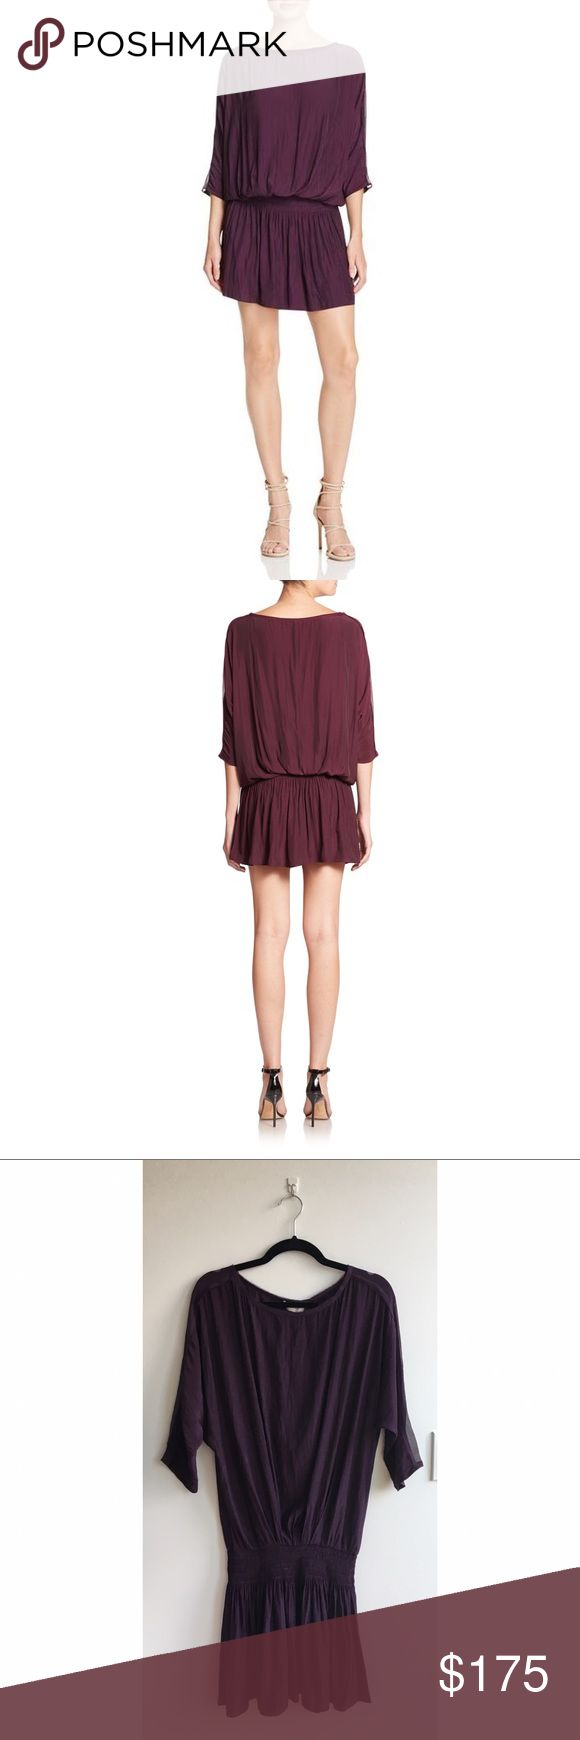 Deep Purple Dropped Waist Dress - Deep purple blouson dress - Ramy Brook brand, purchased at Bloomingdales - Made of poly & silk - Elastic dropped waist silhouette with blouson effect - Never worn, still has tags Ramy Brook Dresses Long Sleeve